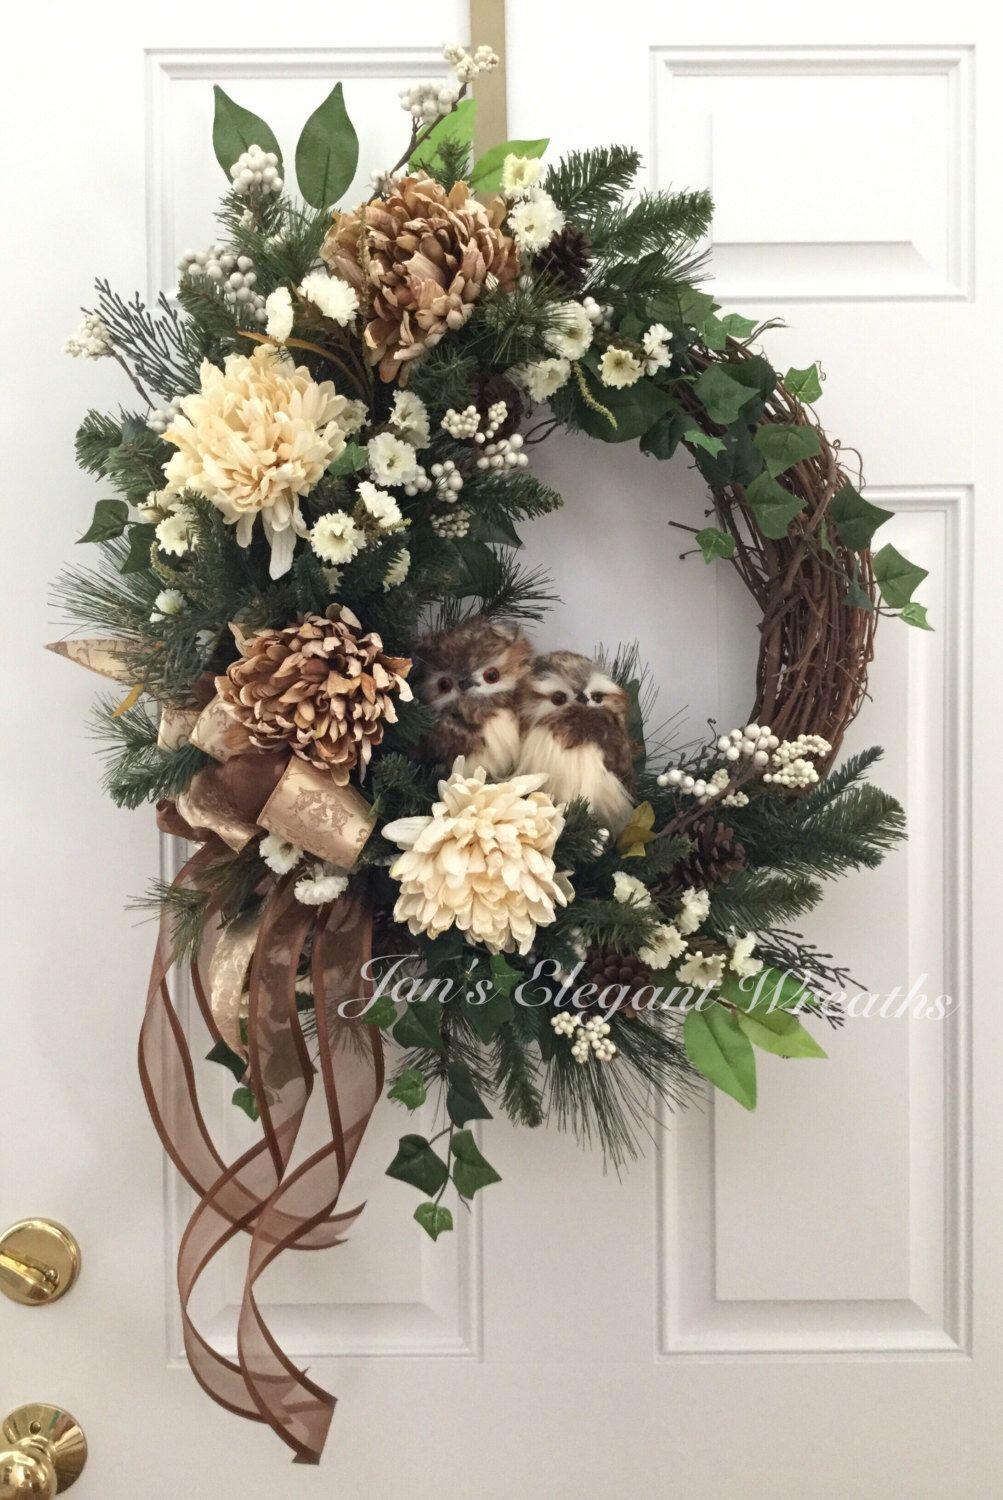 Rustic Christmas Wreath Diy.Pin By Jans Elegant Wreaths On Winter Wreaths Diy Fall